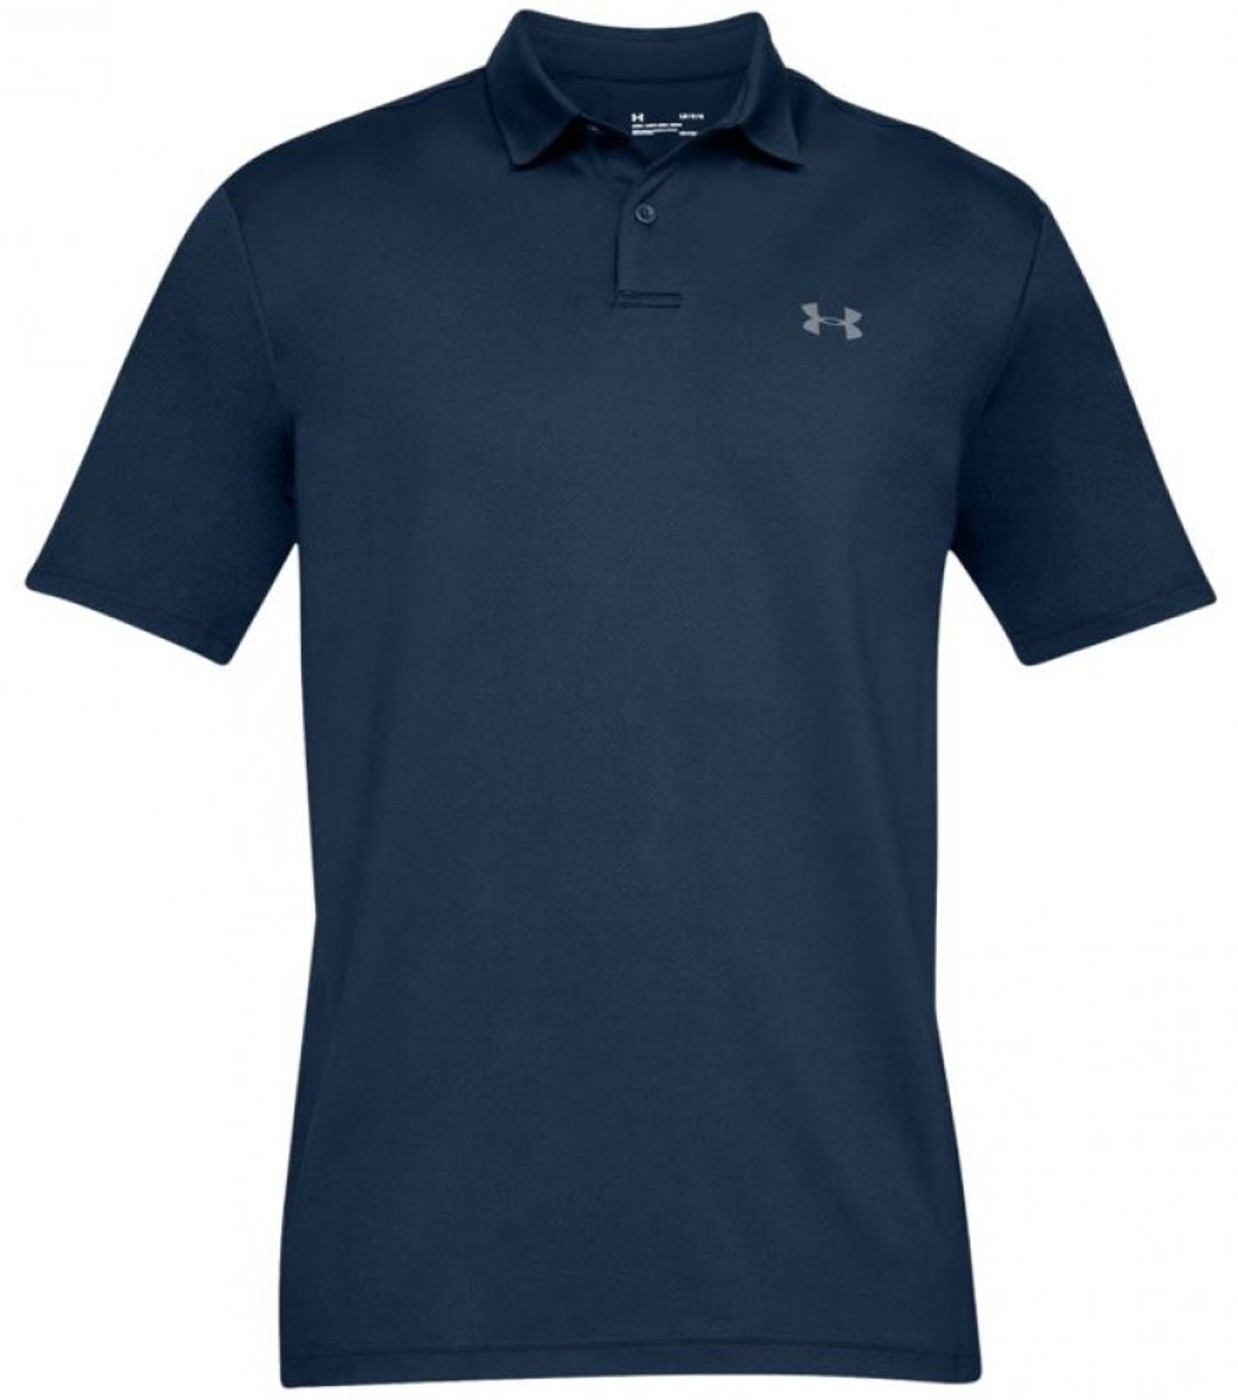 UNDER ARMOUR UA Performance Polo 2.0 - Herren